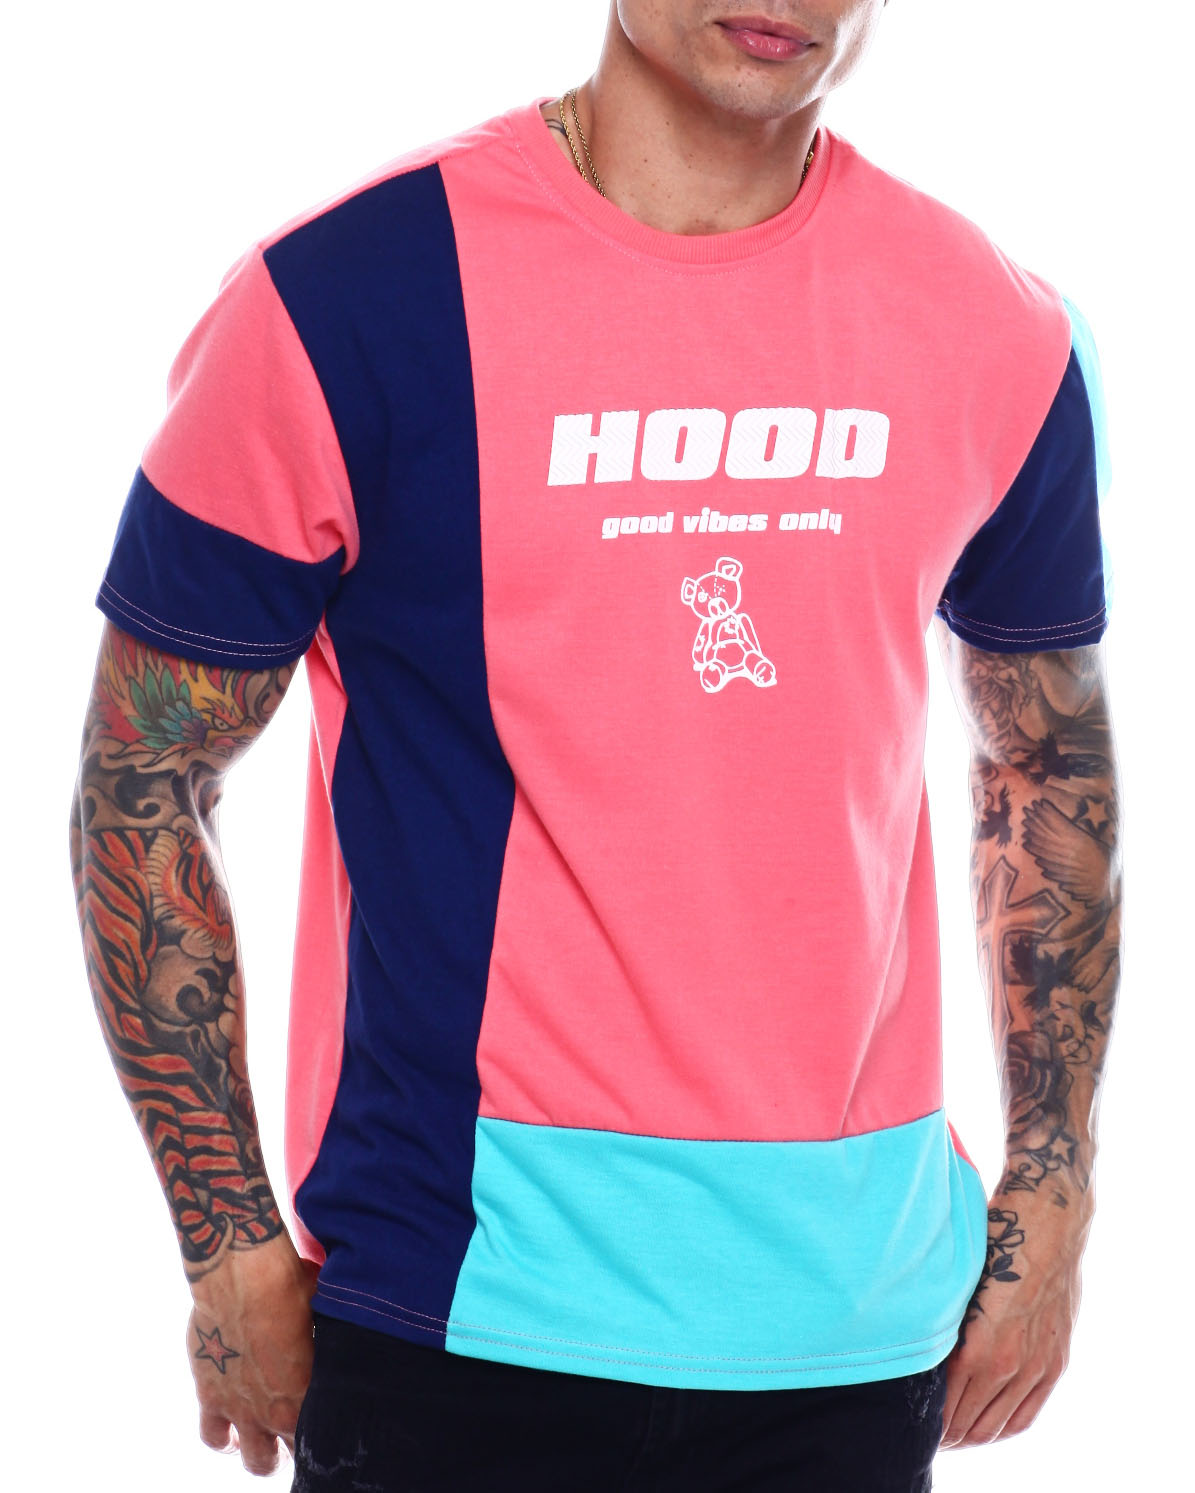 a2a5860c84db Buy hood Good Vibes Only Tee Men's Shirts from Buyers Picks. Find ...